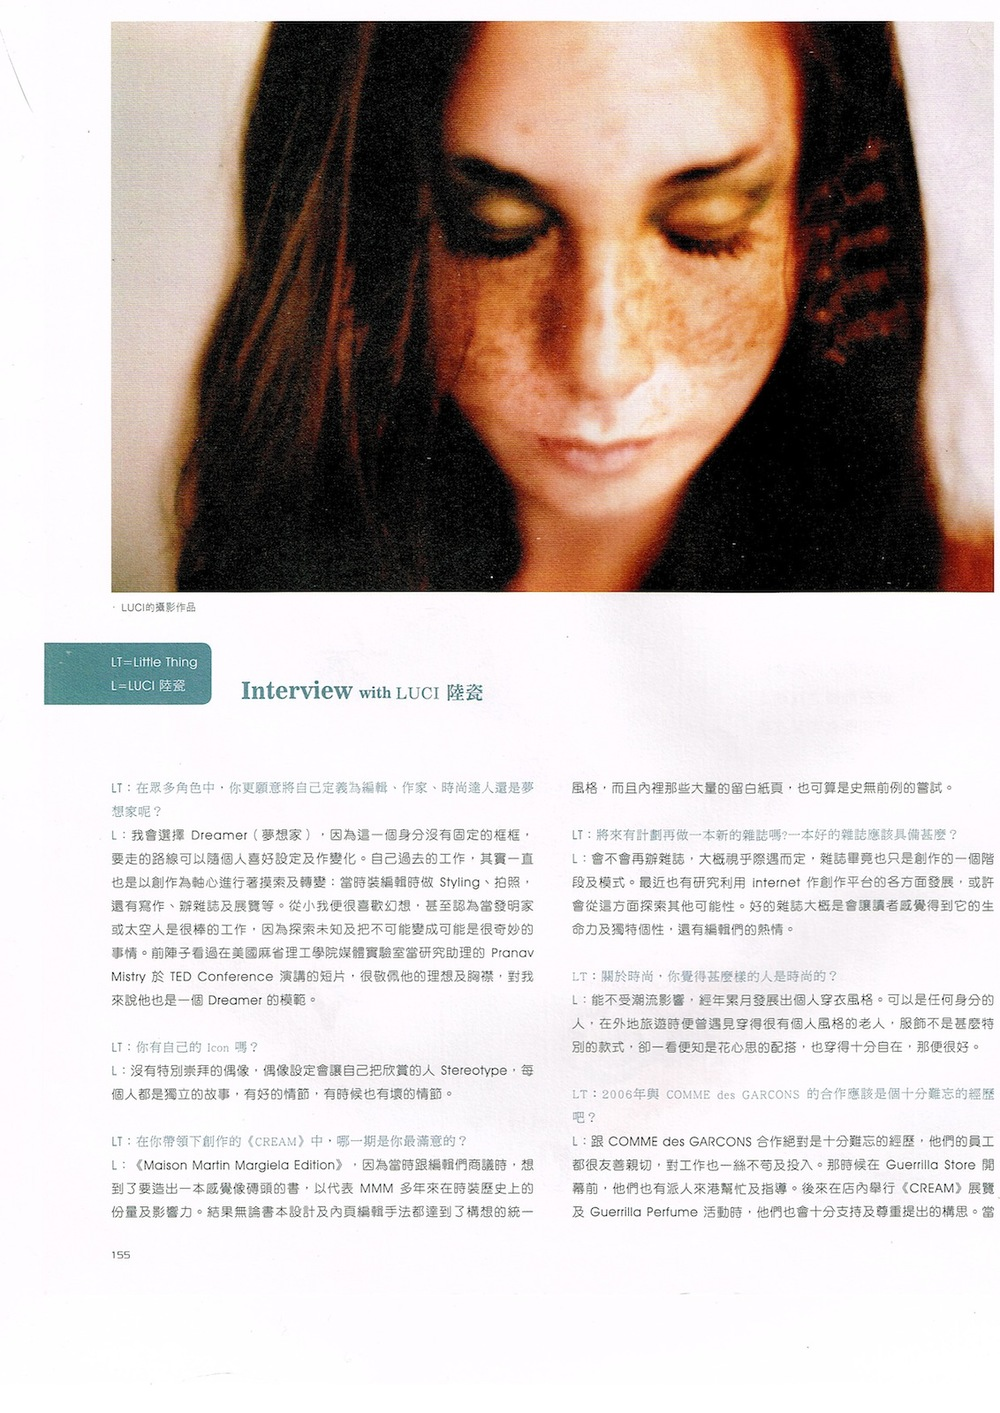 irene_leung_little_thing_interview_issue_10_page3.jpeg